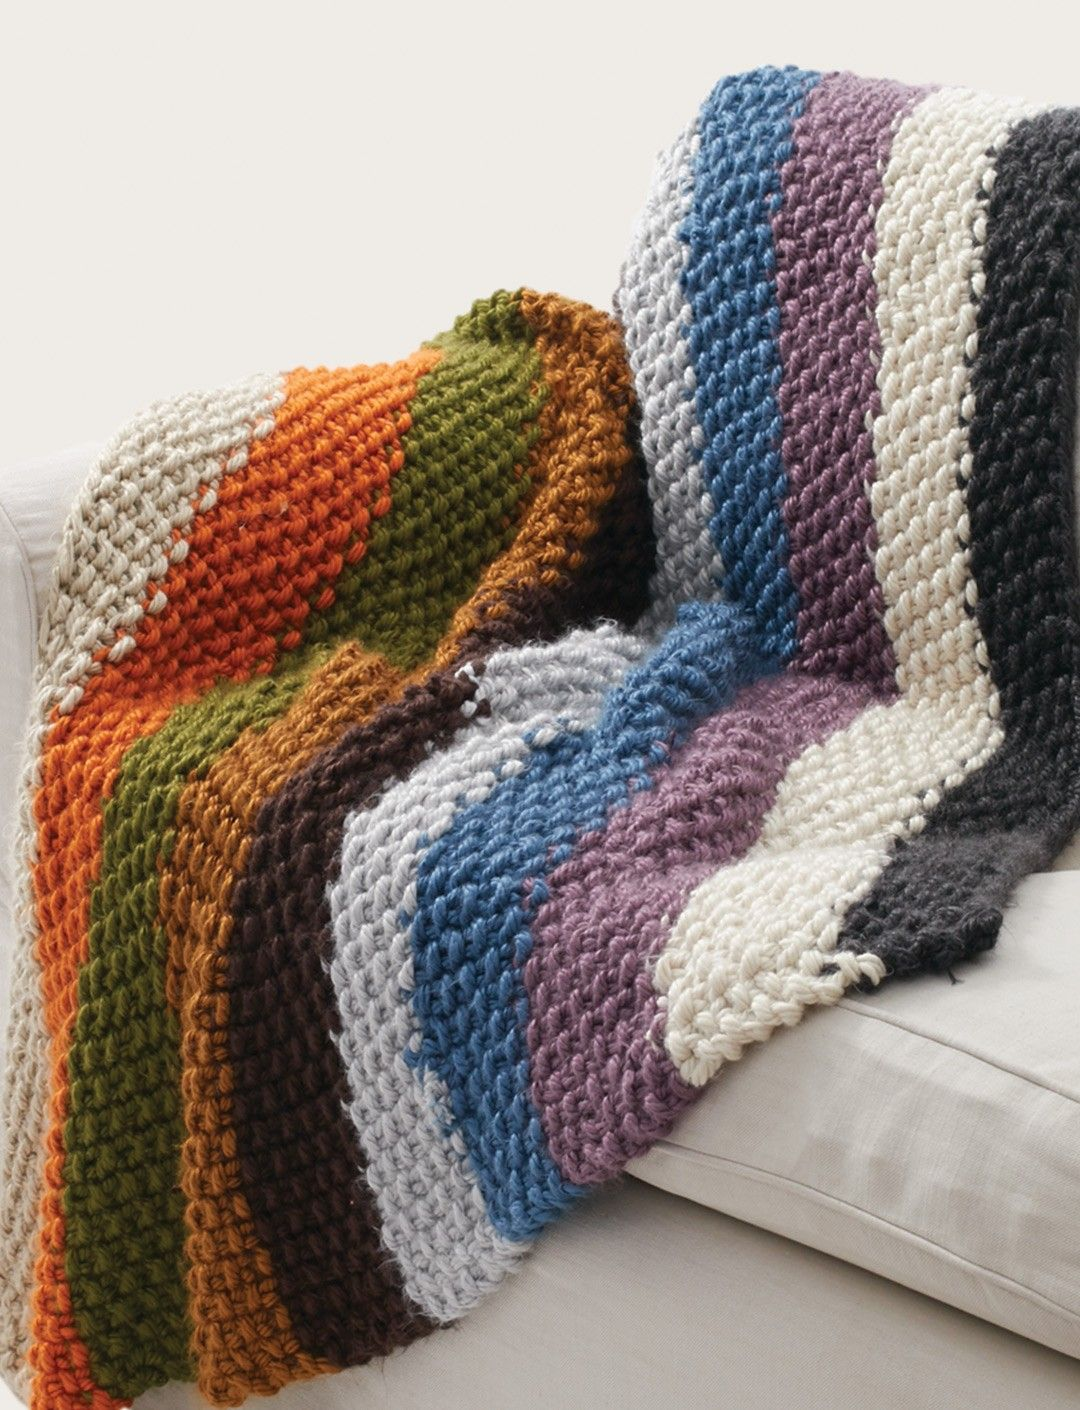 Knitting Quilt Patterns : Bernat seed stitch blanket cozy chunky rainbow striped